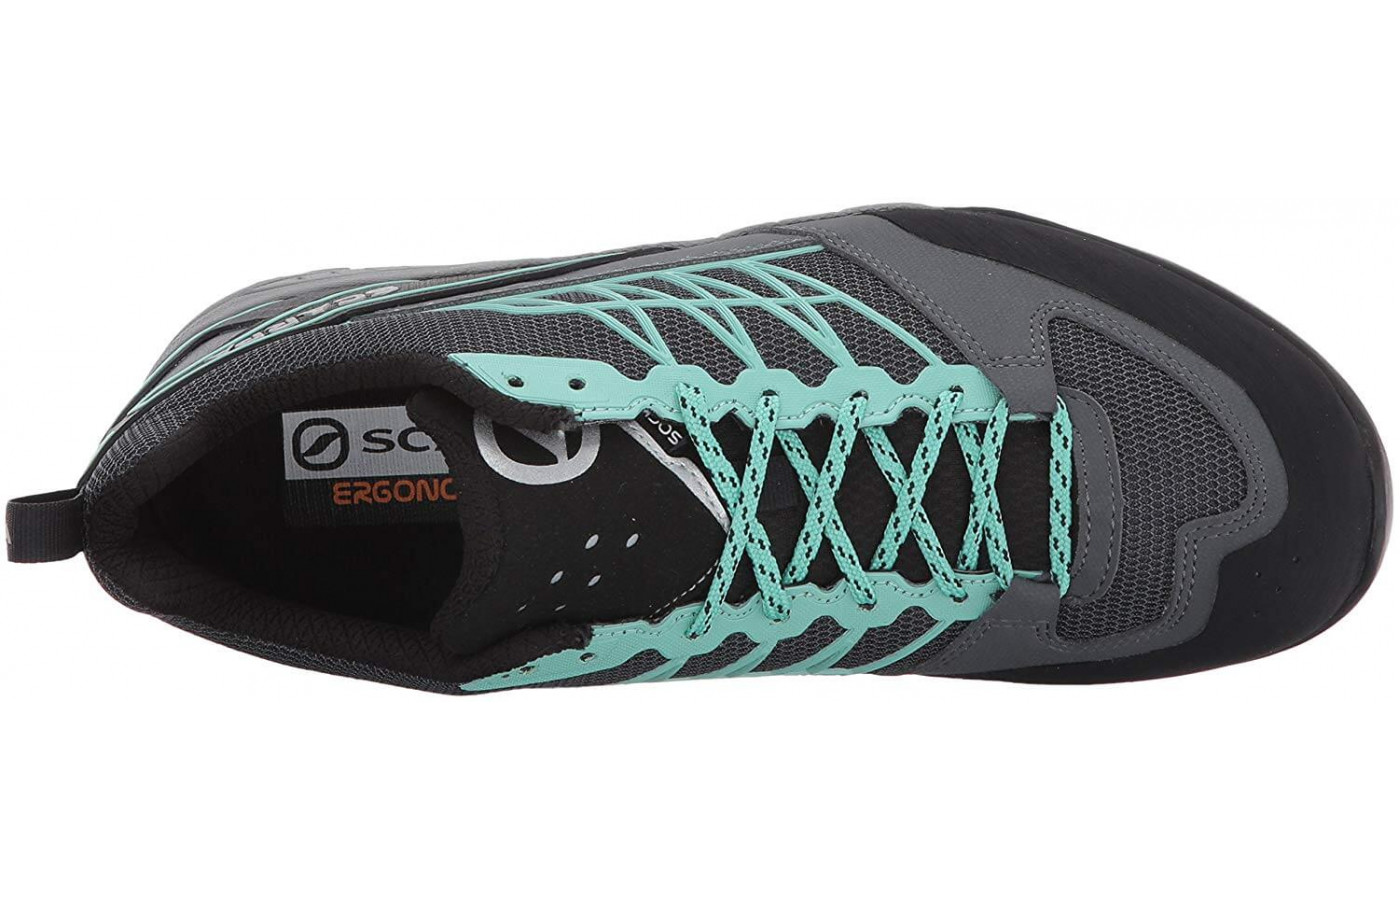 Mesh, TPU, and synthetic leather make up the Epic Lite's upper